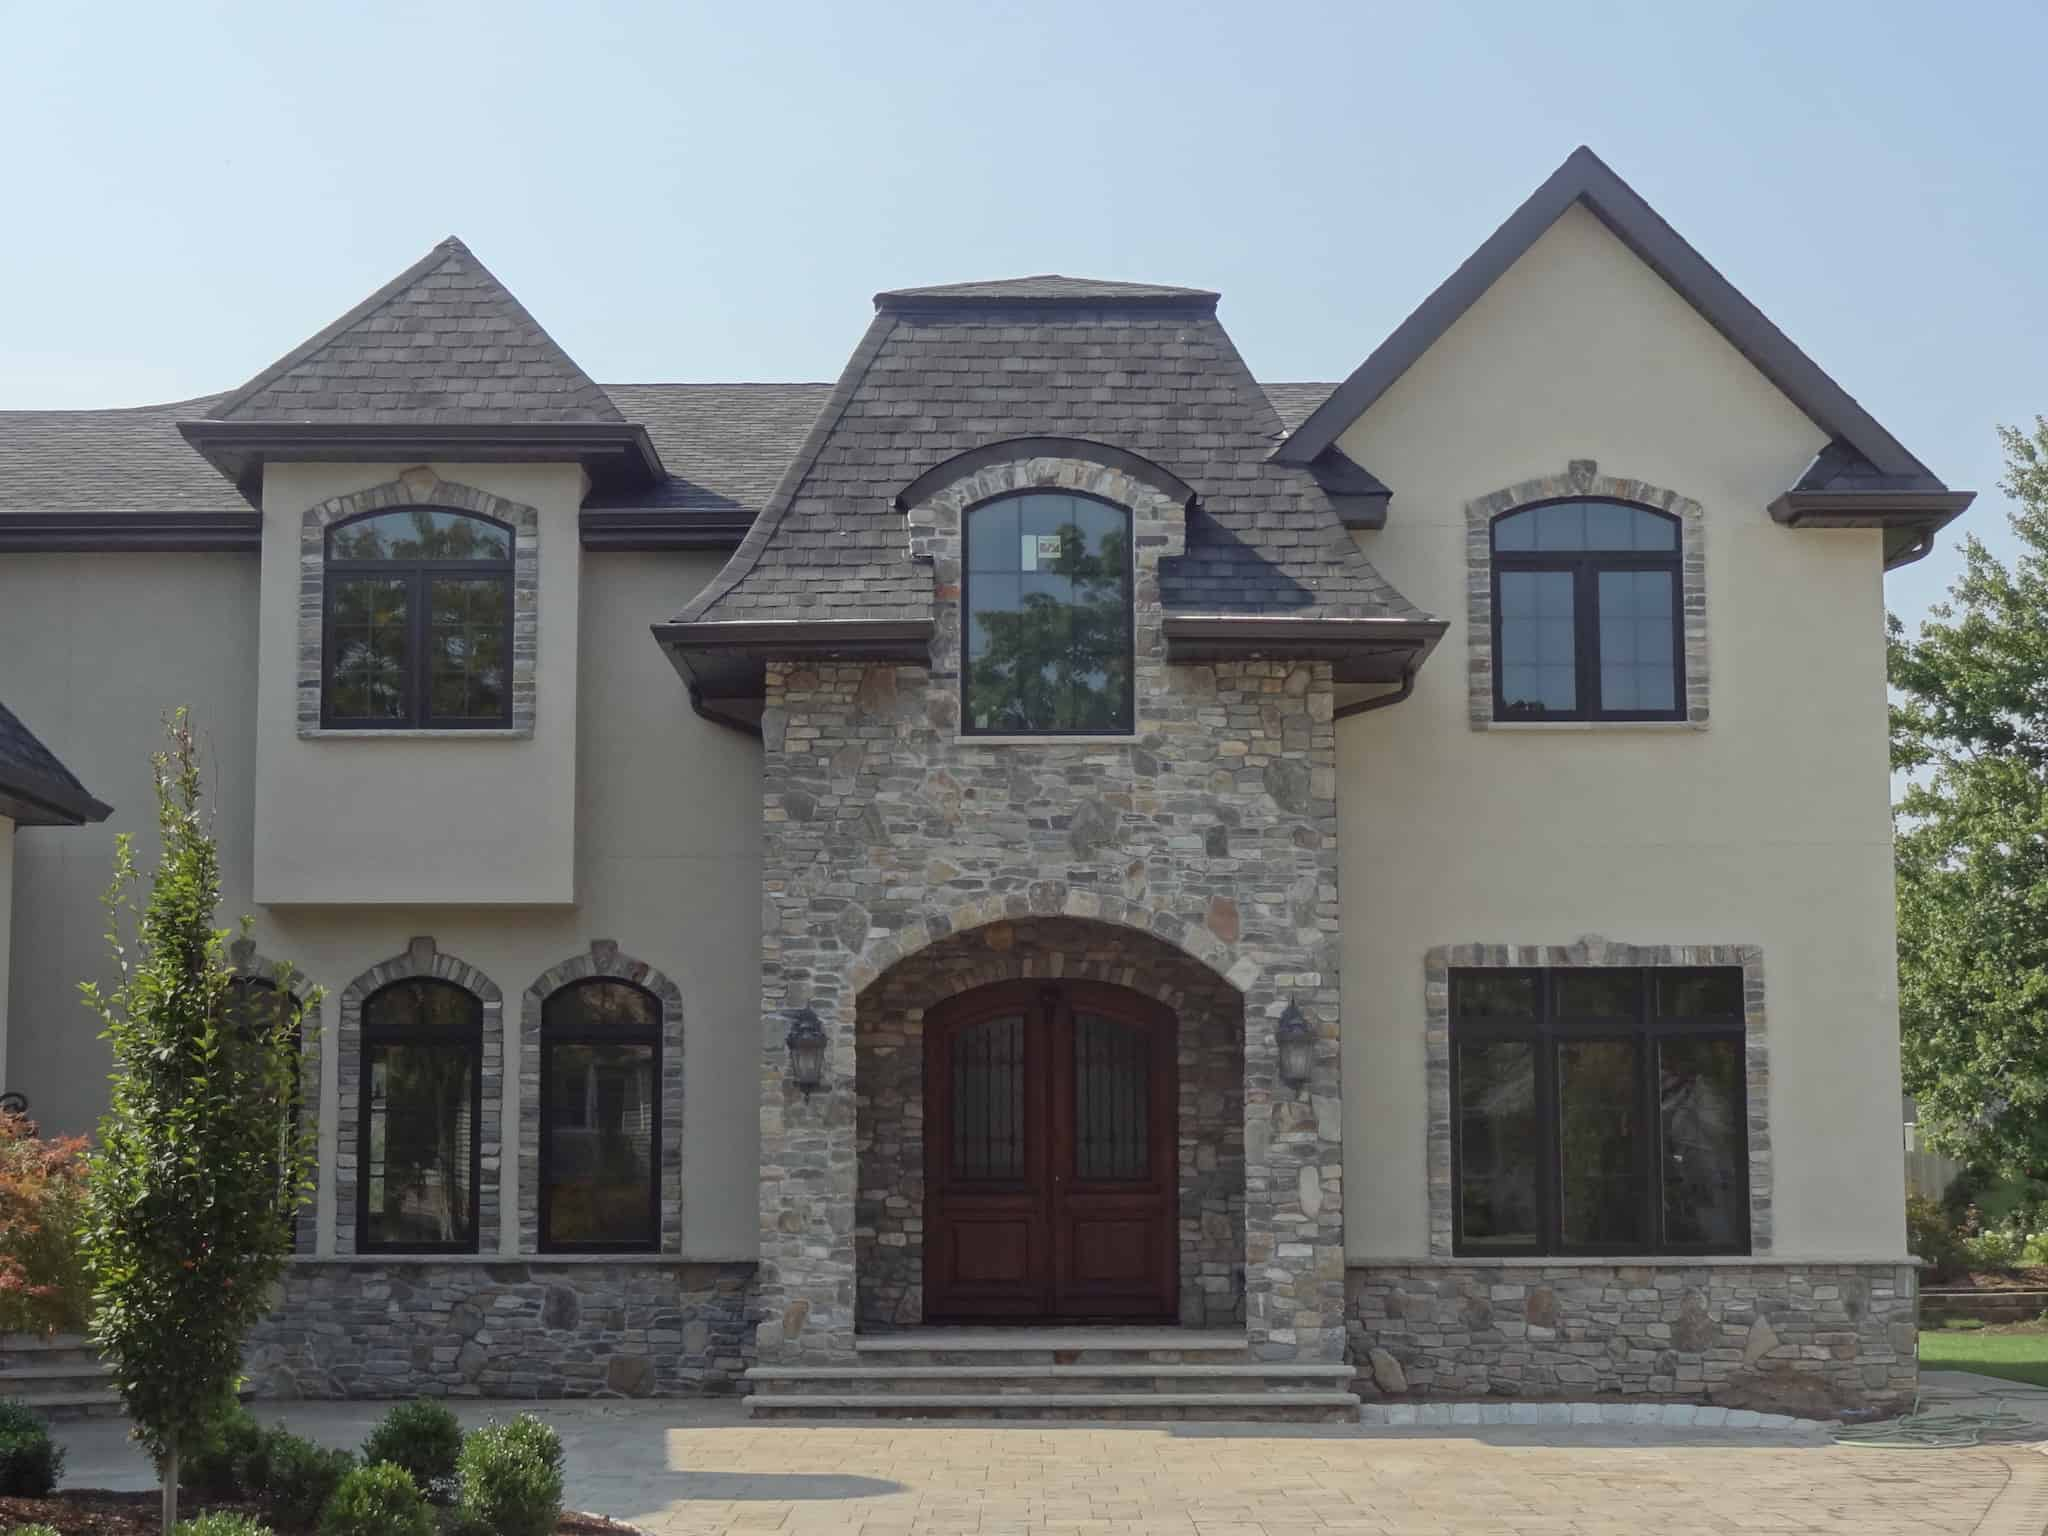 Natural Stone Siding and Stone Window Trim   Stoneyard® on brick and stucco designs, stucco and brick combination exterior, stone front house designs, wood and stone home designs, spanish home designs, log and stone home designs,